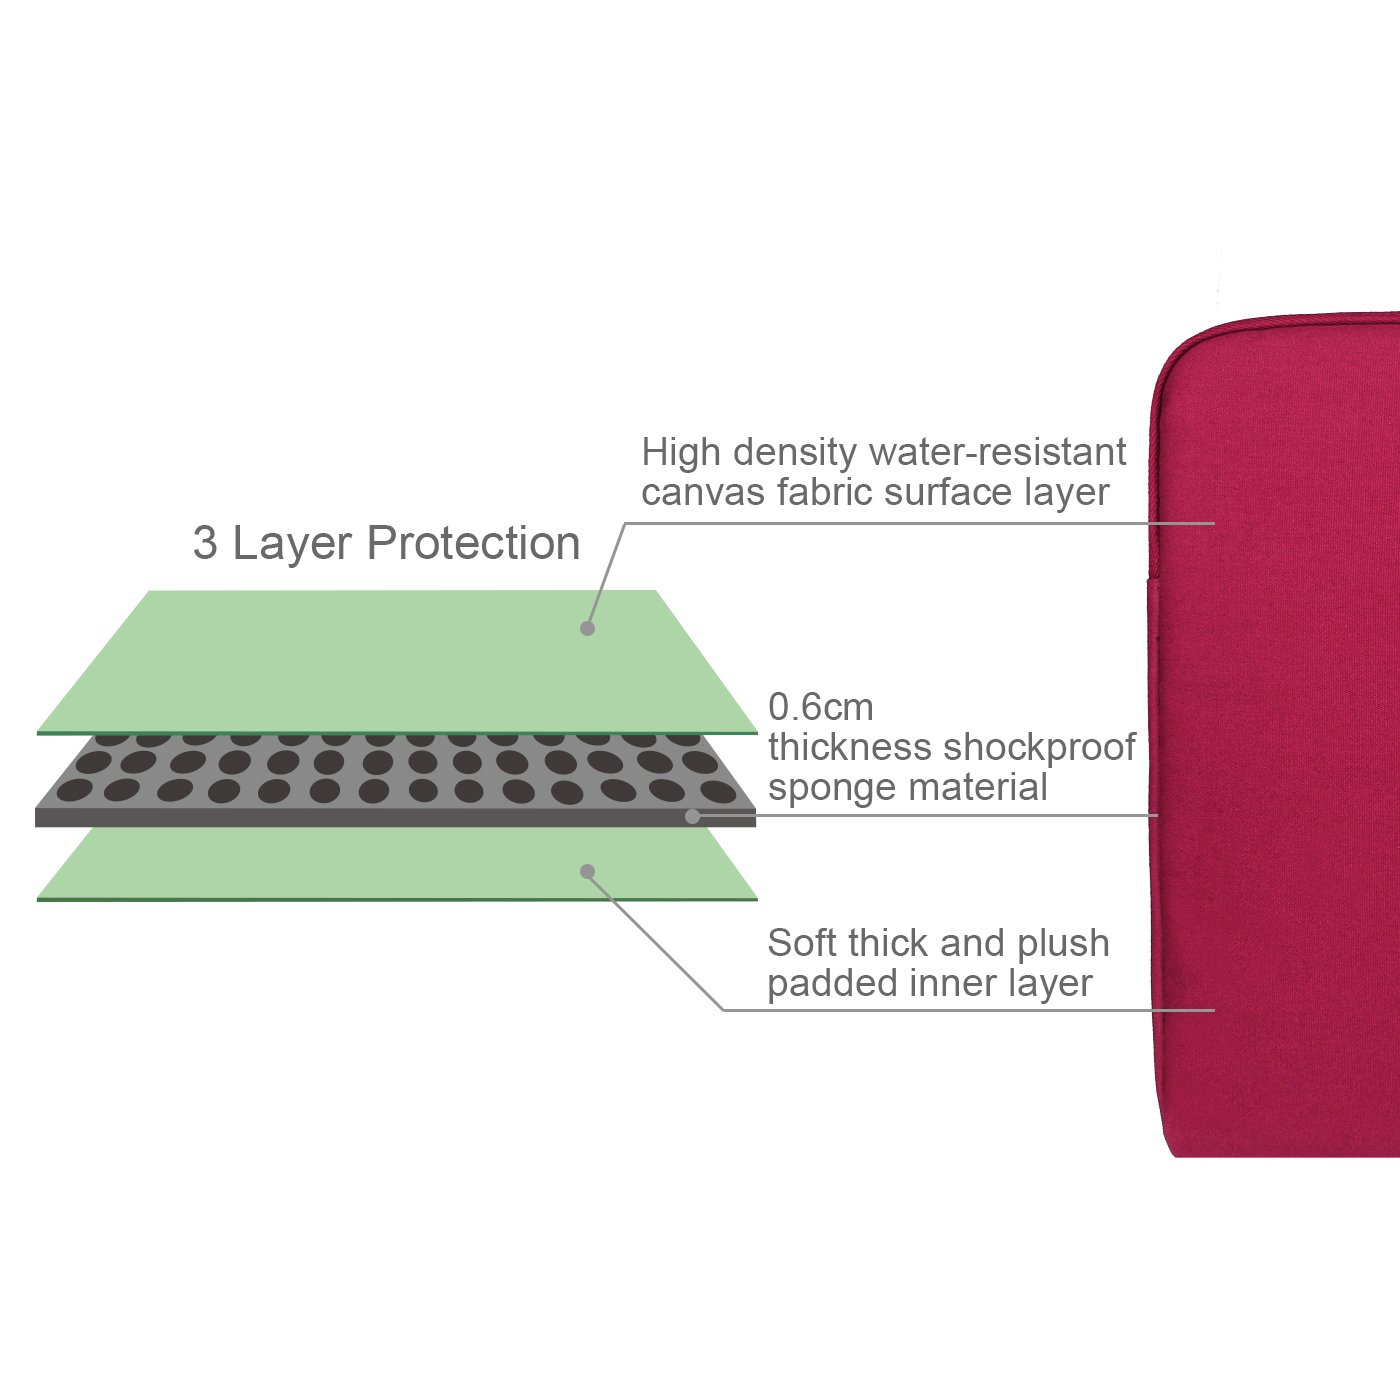 Arvok 15 15.6 16 Inch Water-resistant Canvas Fabric Laptop Sleeve With Handle&Zipper Pocket/Notebook Computer Case/Ultrabook Briefcase Carrying Bag/Pouch Cover For Acer/Asus/Dell/Lenovo/HP,Wine Red by ARVOK (Image #6)